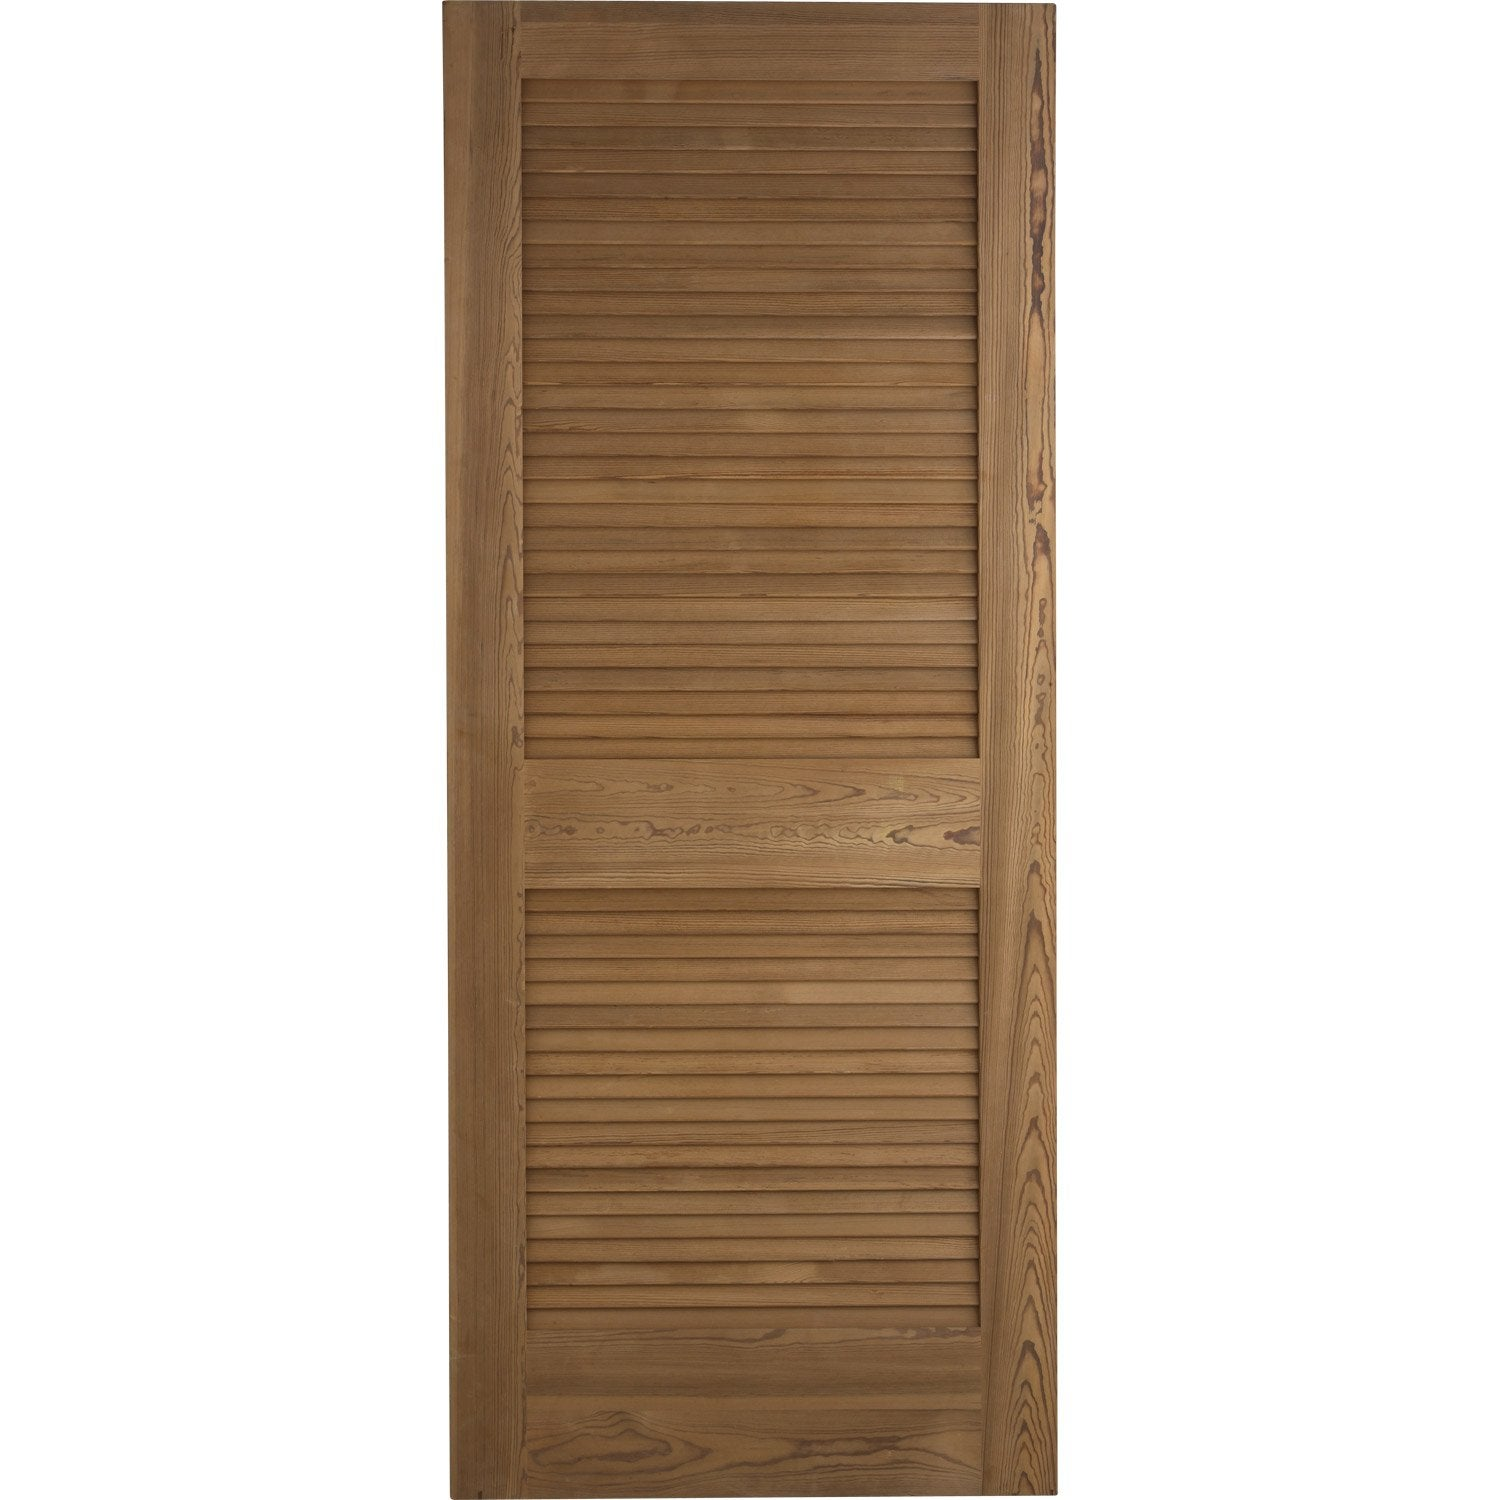 Porte coulissante pin plaqu marron java artens 204 x 73 for Porte a galandage bois